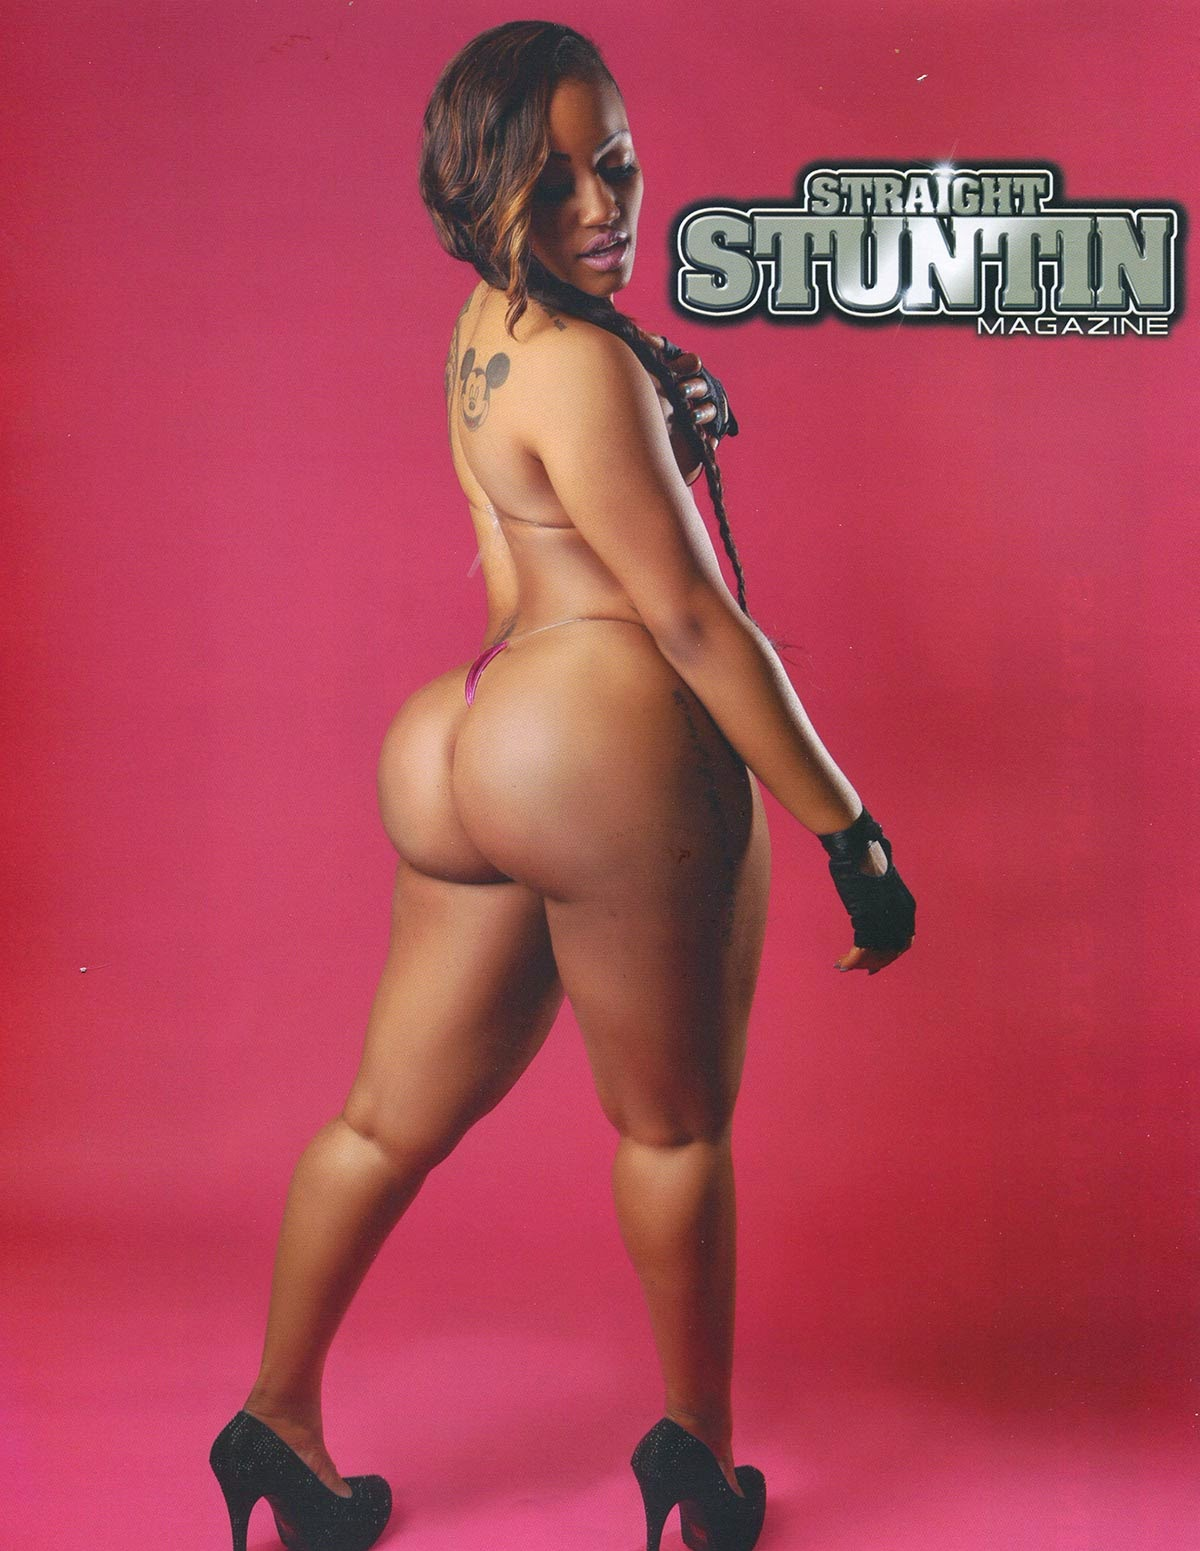 Jhonni Blaze Featured In Straight Stuntin Magazine Issue #32